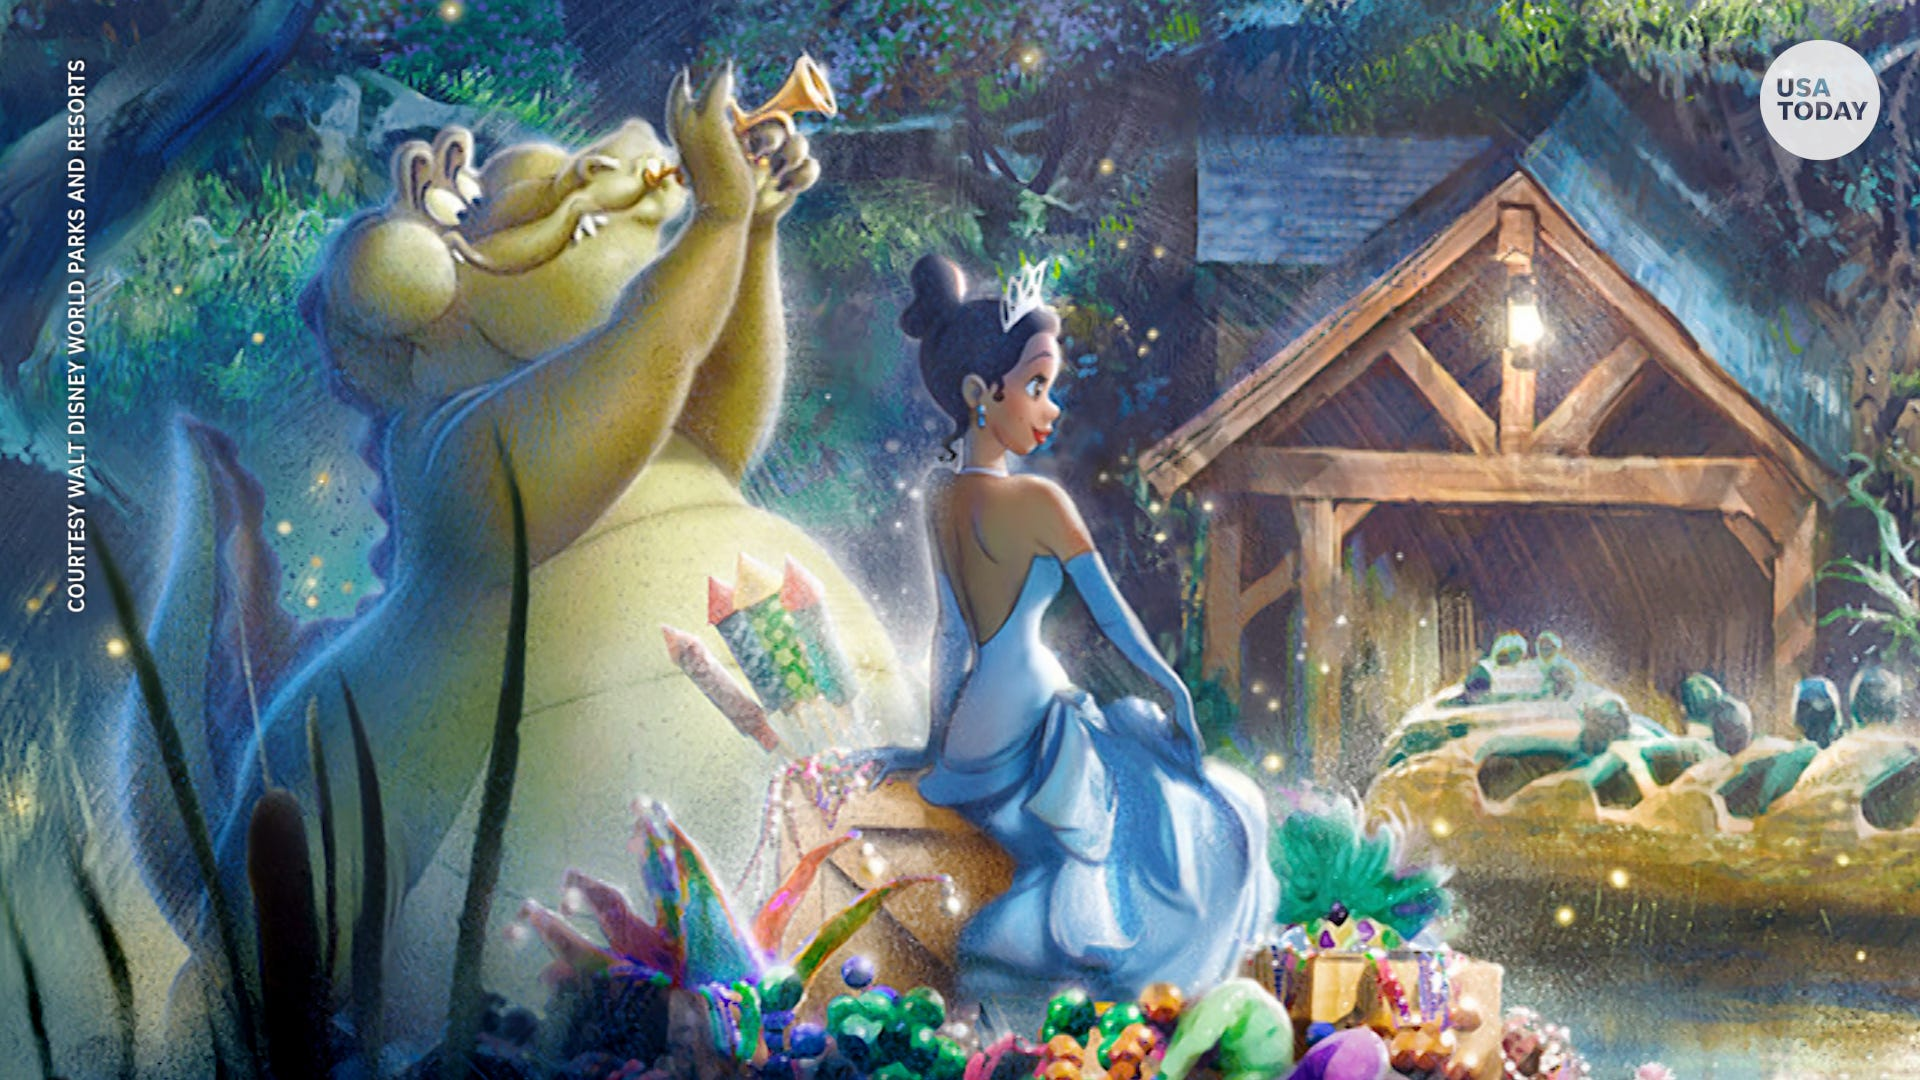 Disney Changing Splash Mountain To Feature Princess And The Frog